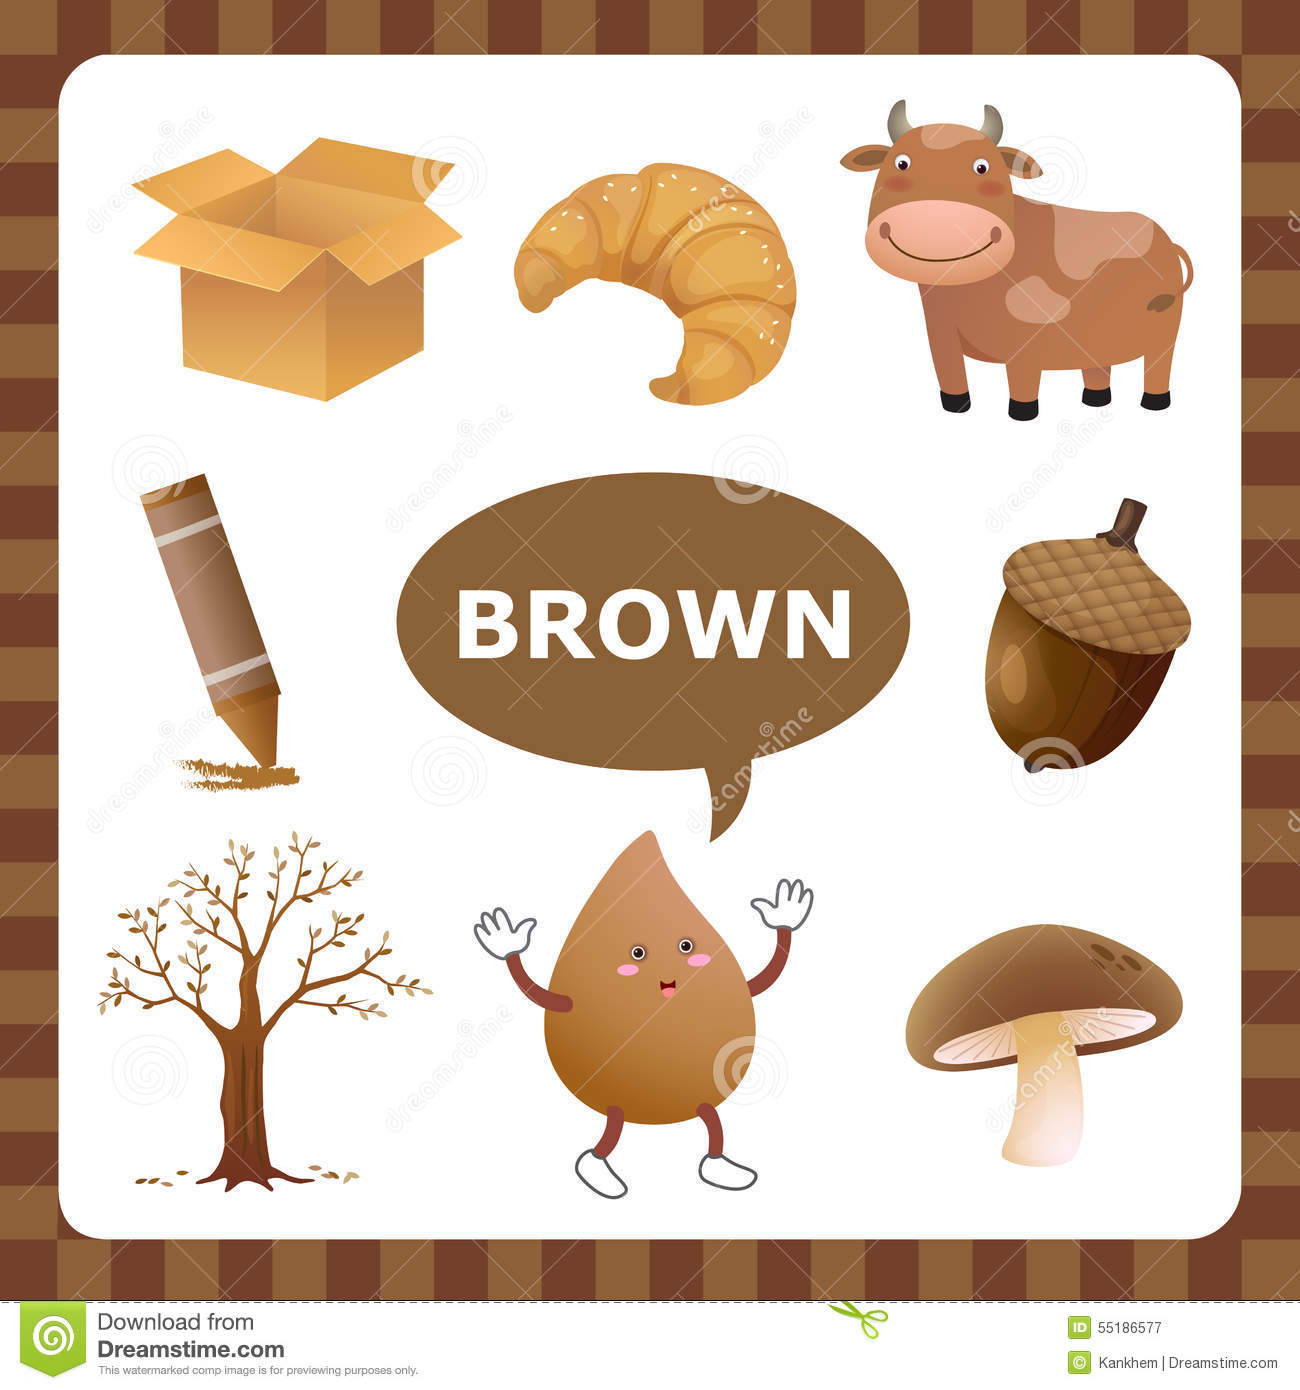 Brown Color Stock Vector Illustration Of Autumn Acorn